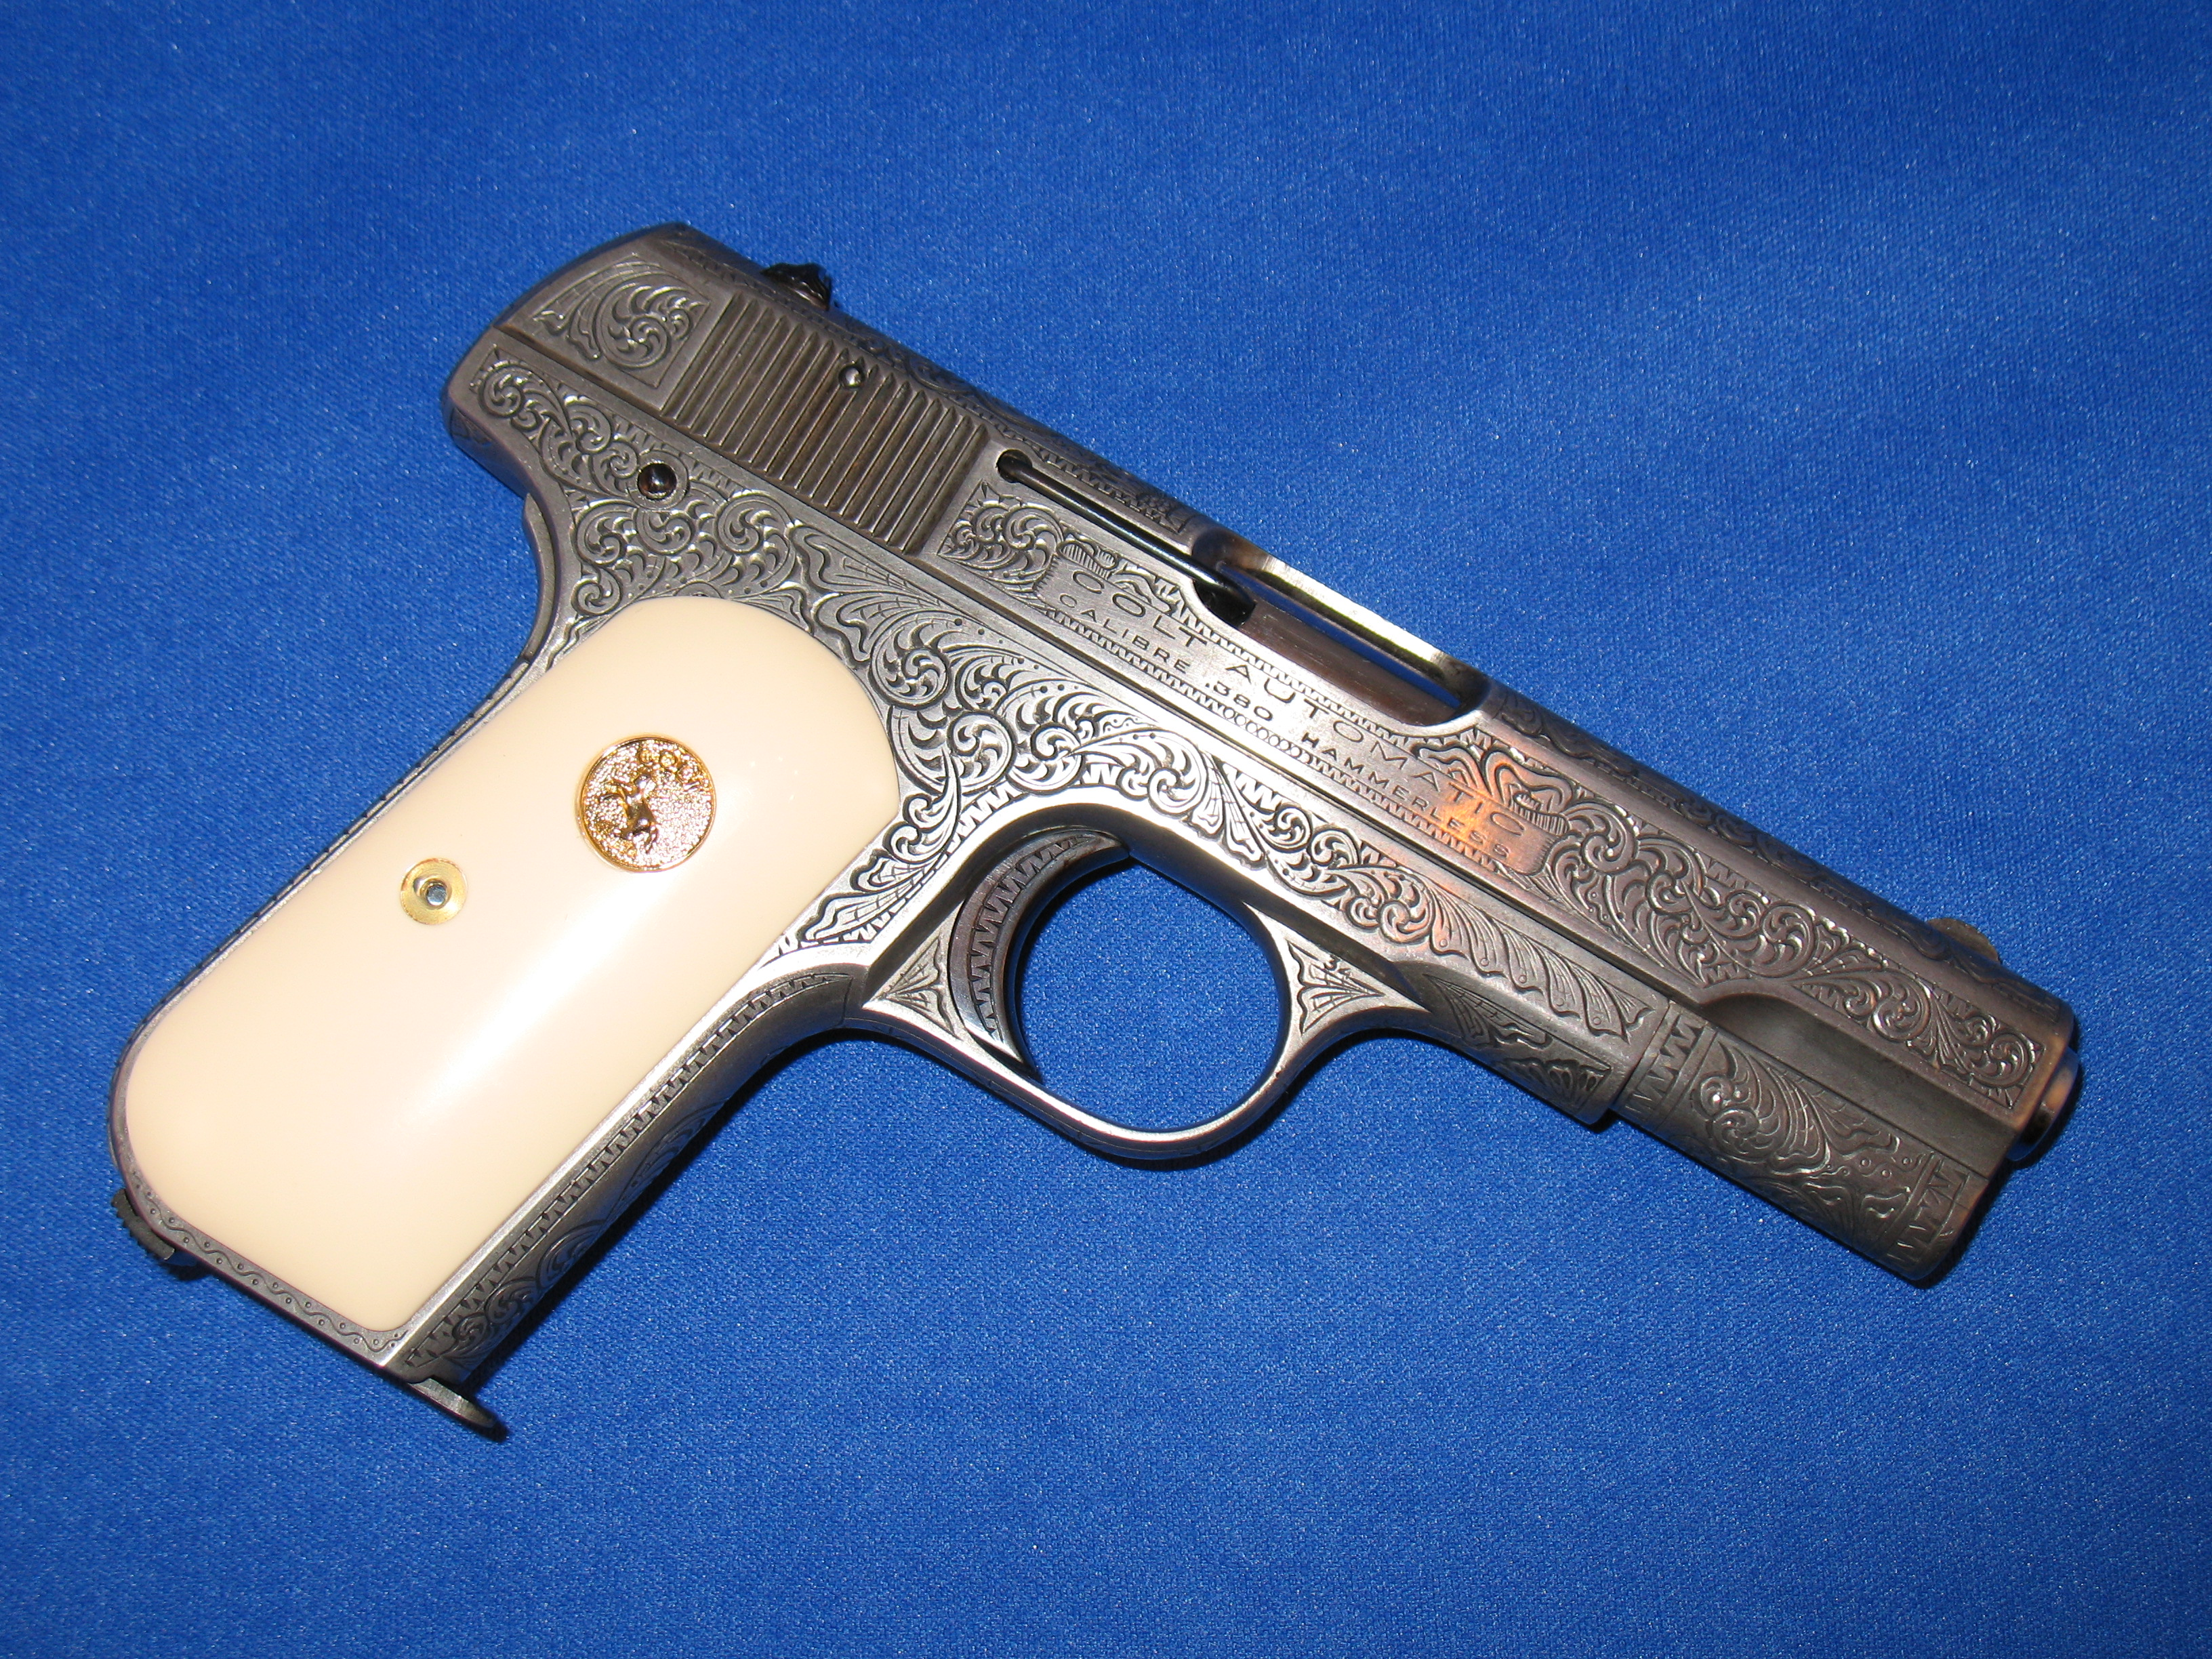 Share some Colt love - a picture thread-img_2430.jpg